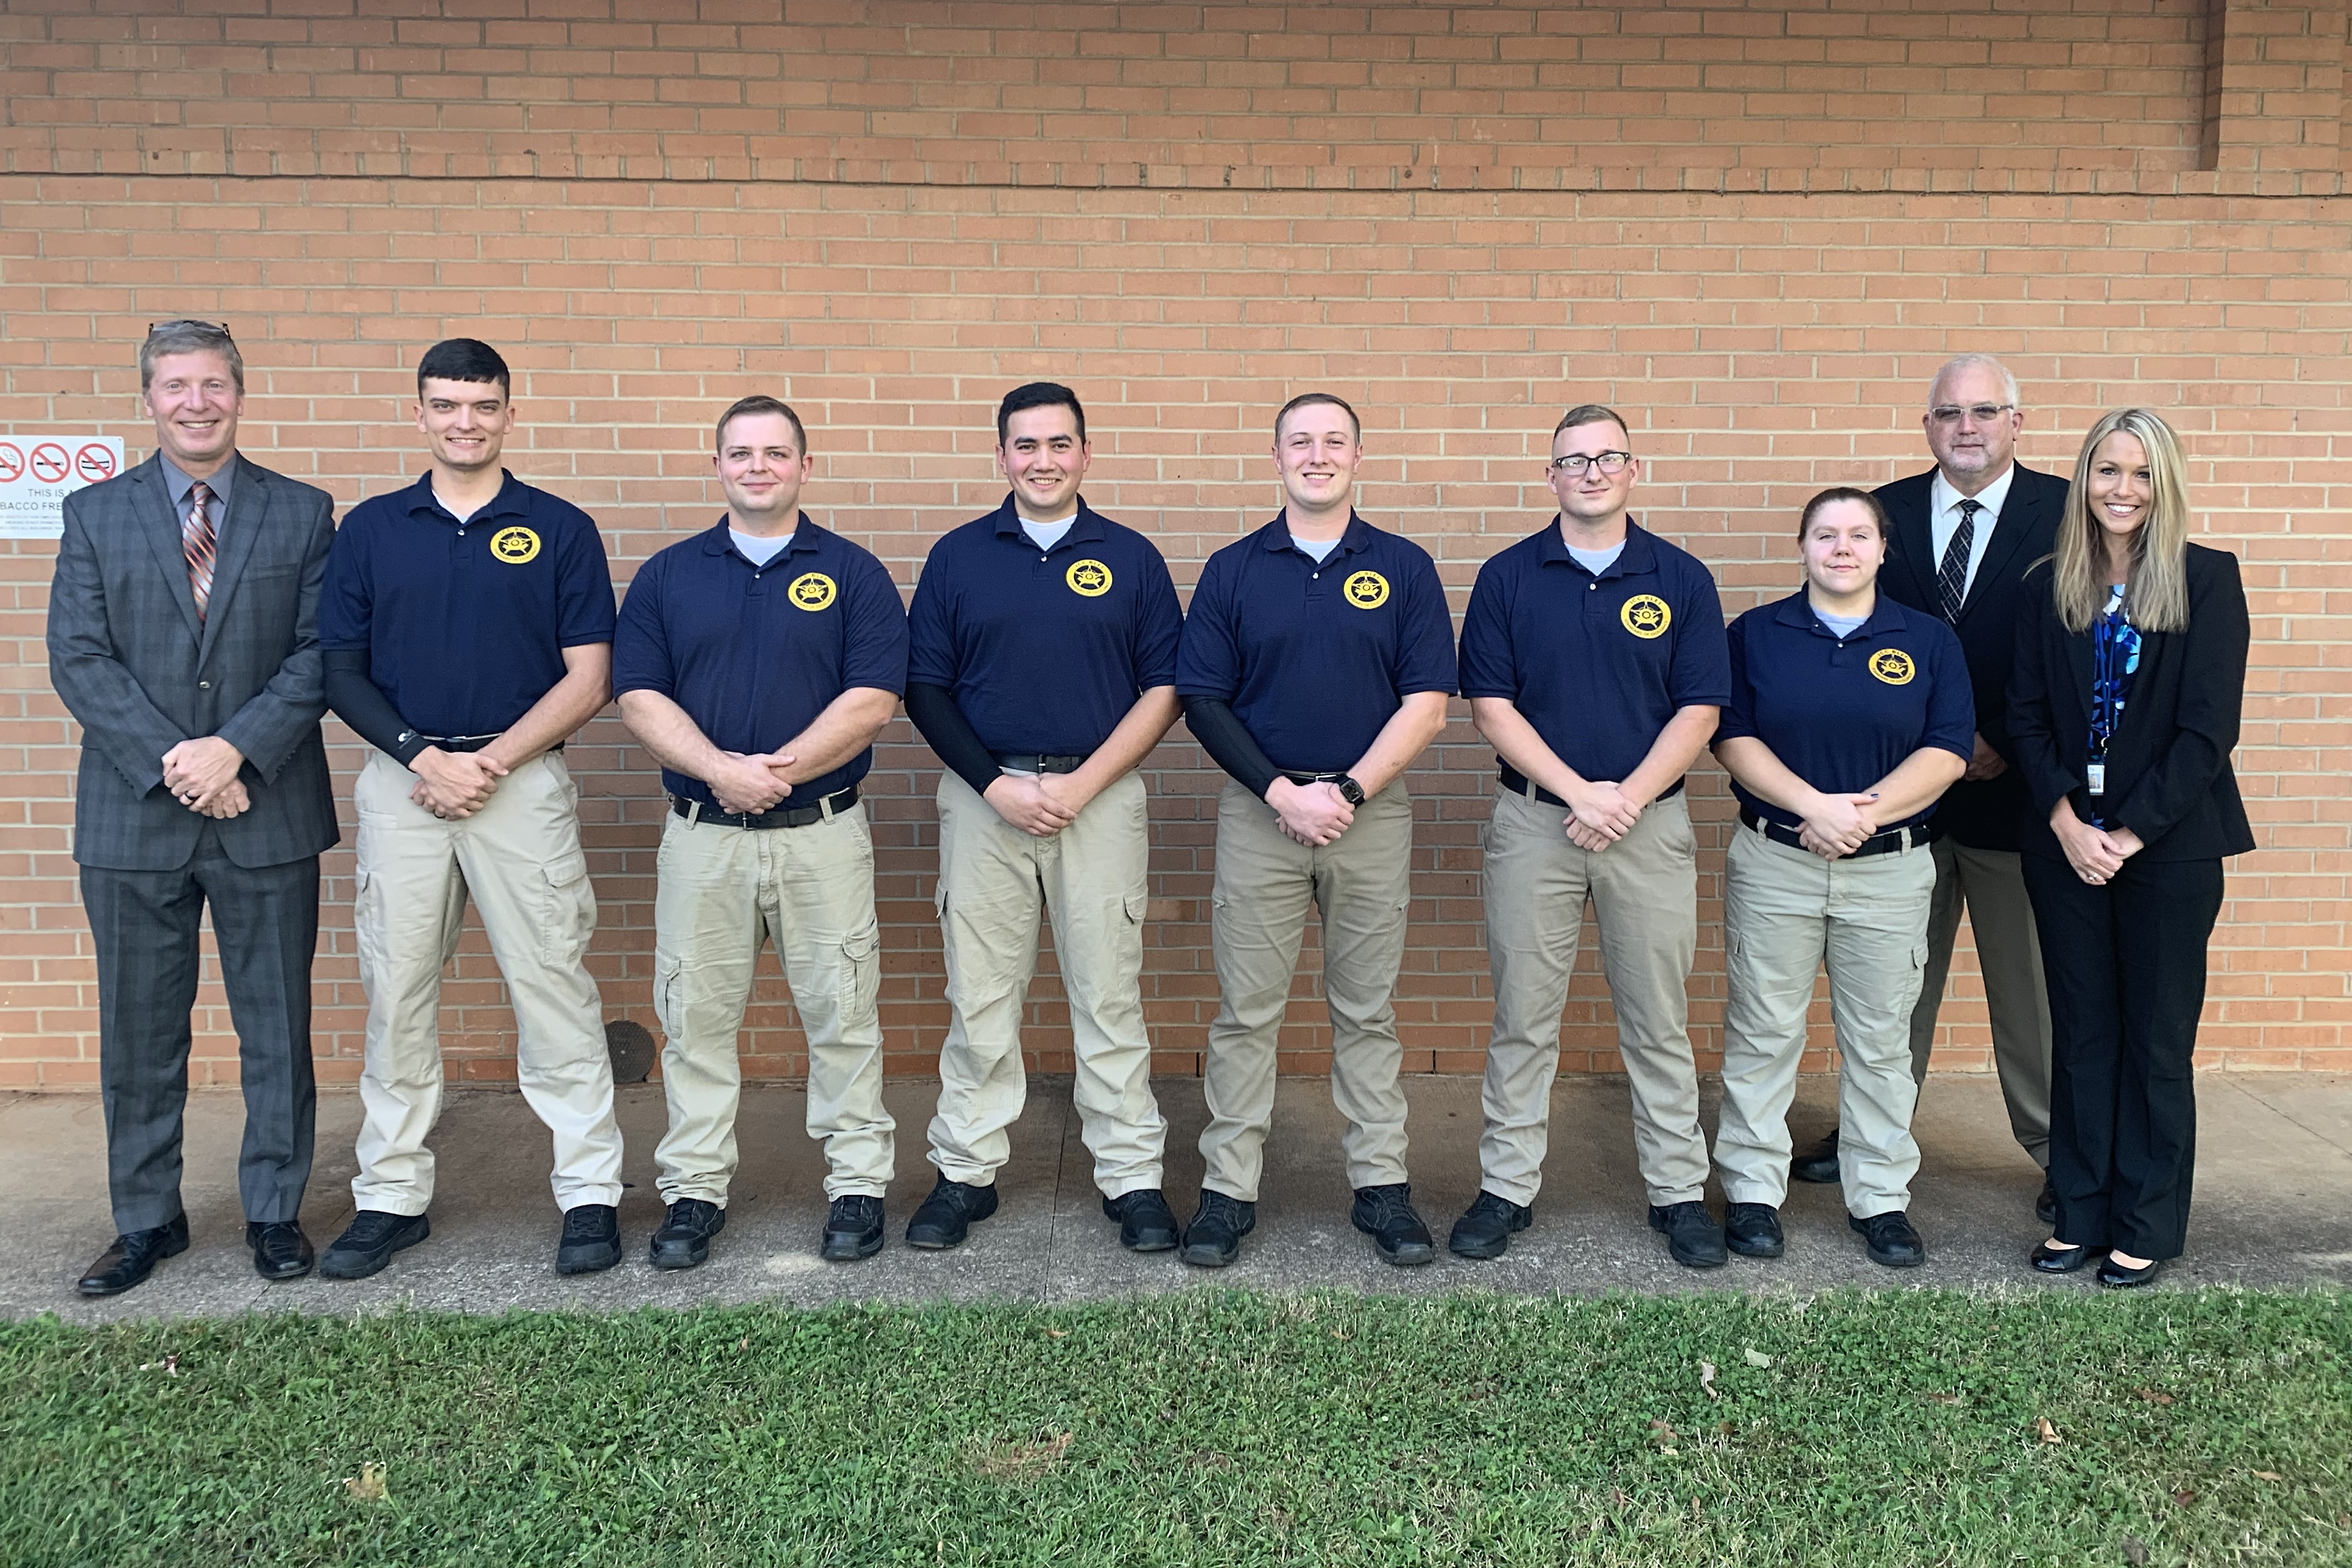 The 81st BLET class graduated earlier this week. Pictured are instructor Thomas Tarker (left to right), Austin G. Coggins, Josh C. Tuffill, Robert M. Hoyle, Justin L. Haney, Ethan J. Killeen, Kelly M. Schuh, BLET Director Philip Bailey, and Ava Yamouti, dean of Health and Public Services. Daniel W. Edwards is not pictured.